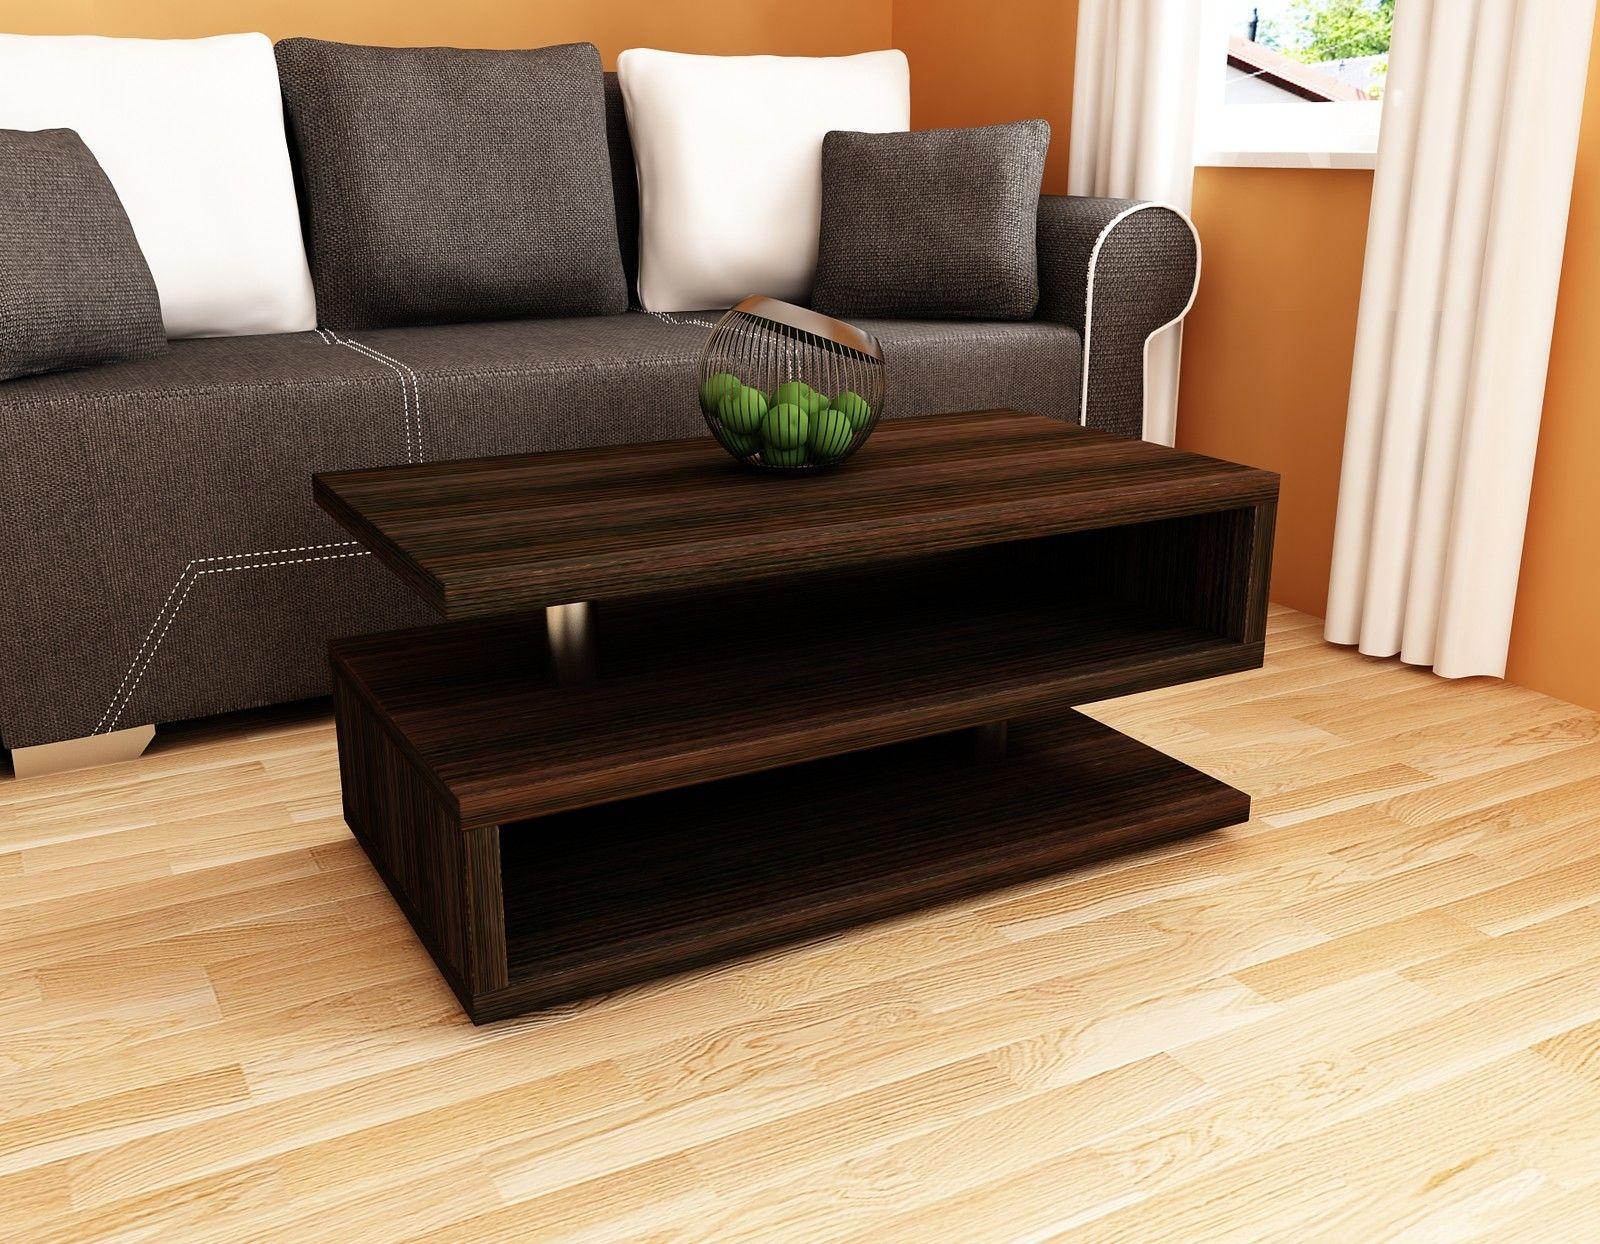 couchtisch modern 100cm wohnzimmertisch 100x55cm sofatisch tisch design holz kaufen bei madera. Black Bedroom Furniture Sets. Home Design Ideas